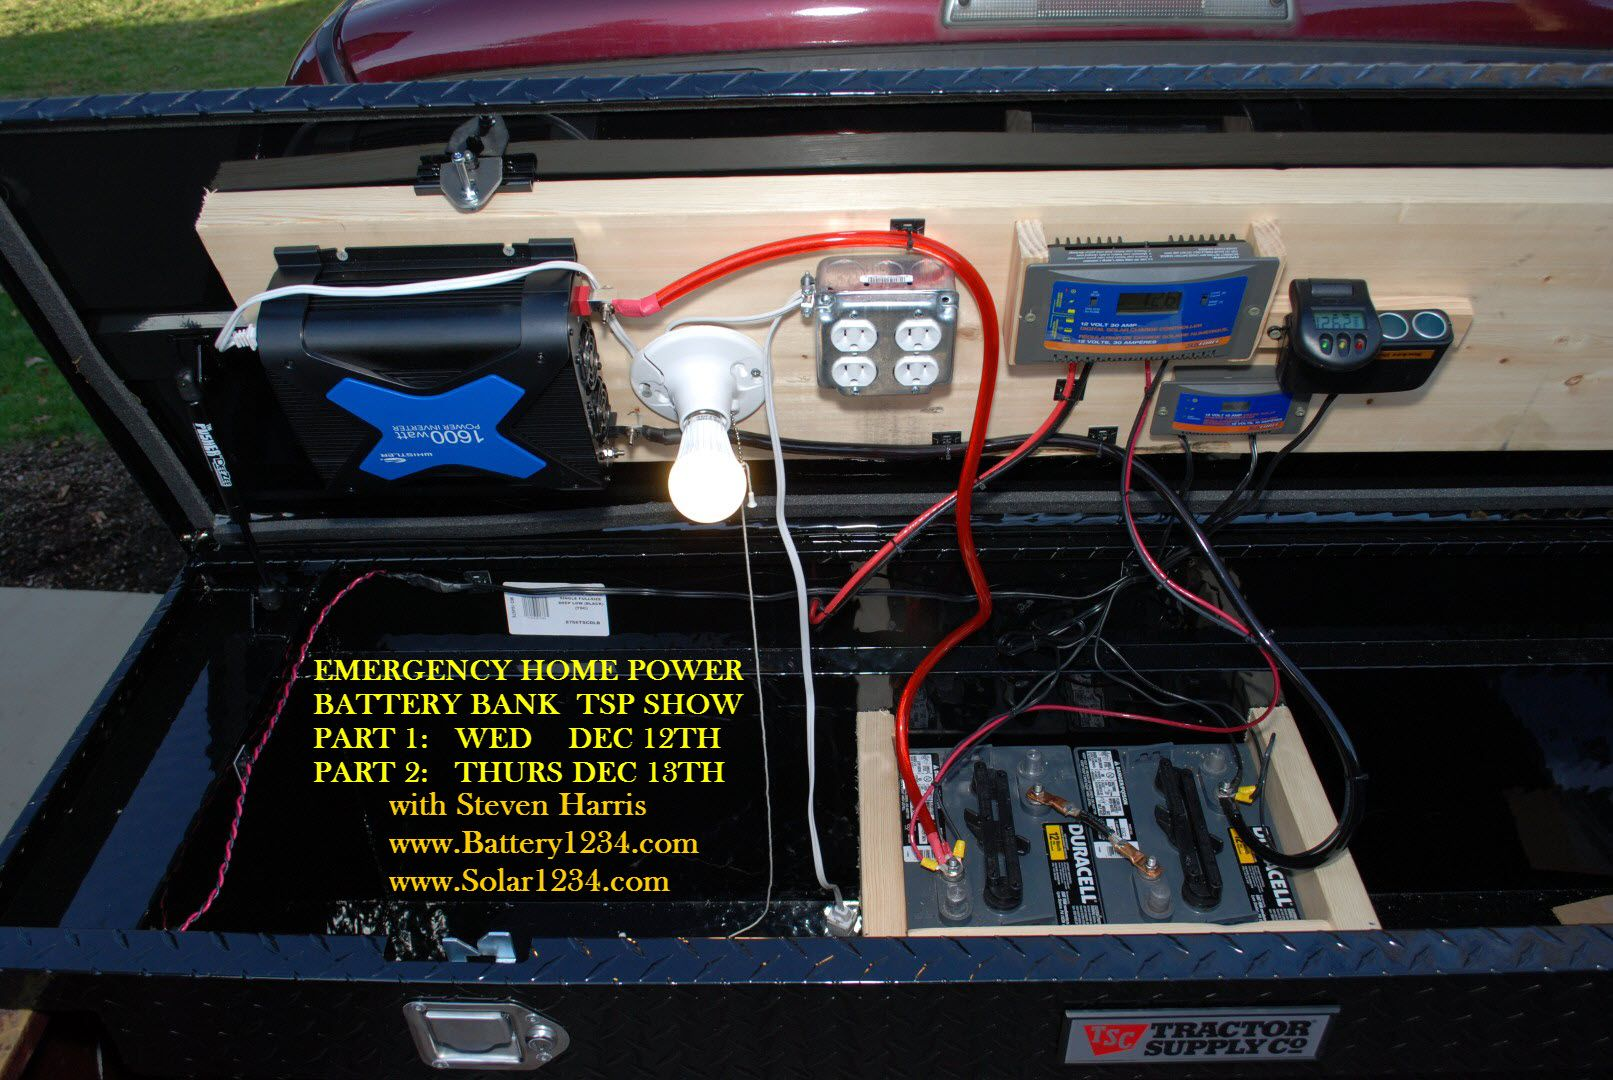 Diy Battery Bank Videos For Emergency Power Outages Battery Bank Emergency Survival